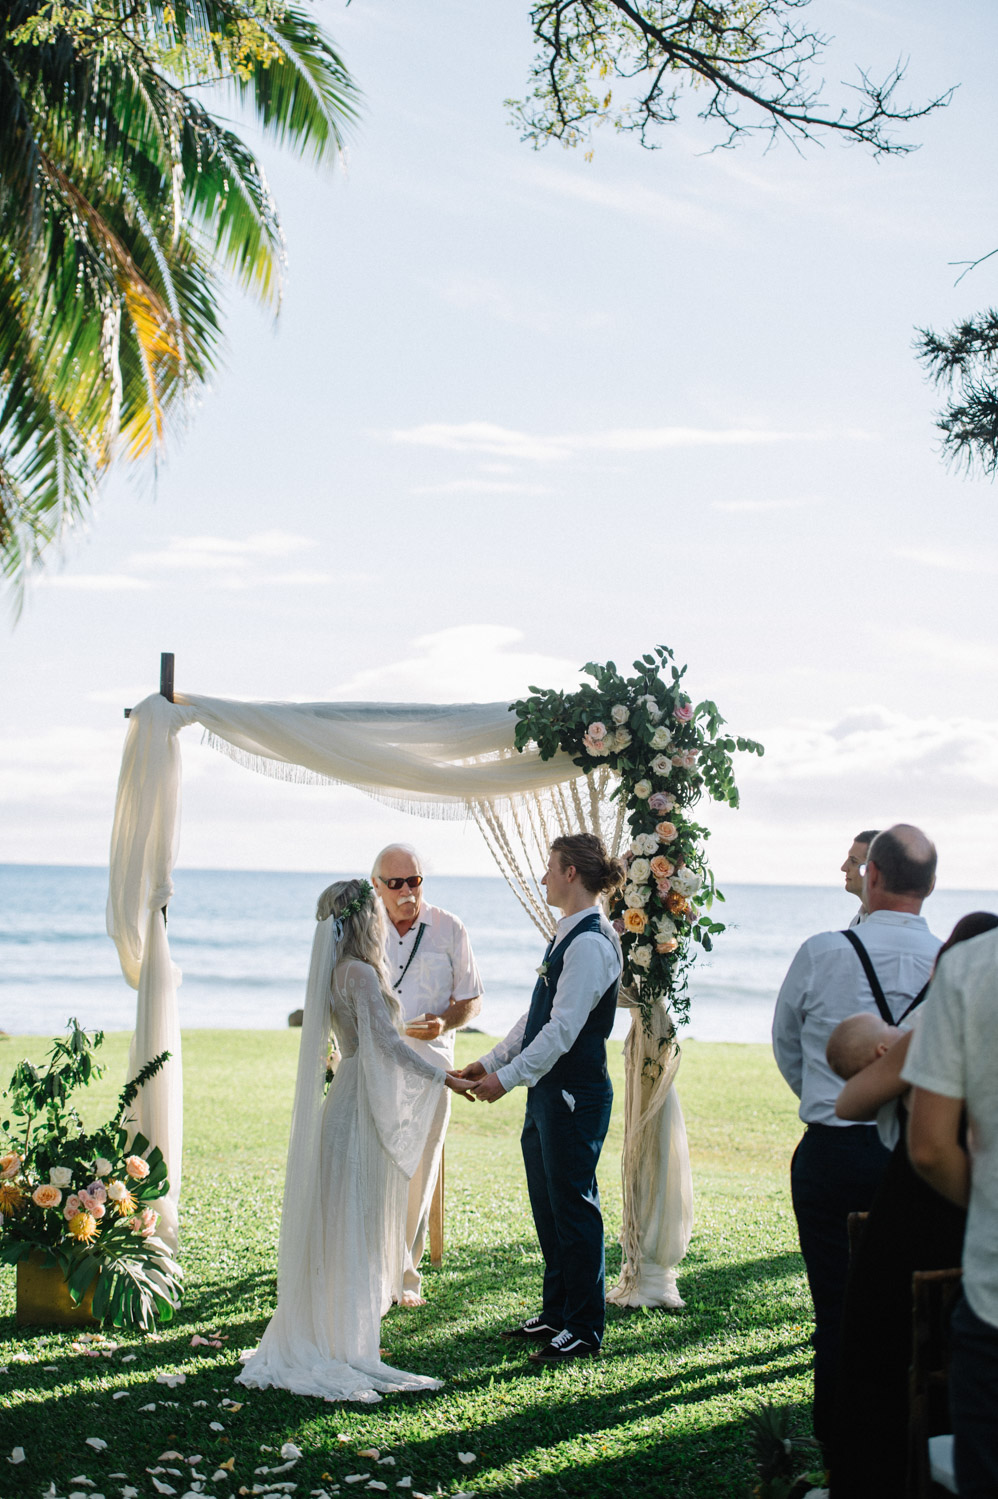 Maui wedding Olowalu Plantation House by Tara Kneiser